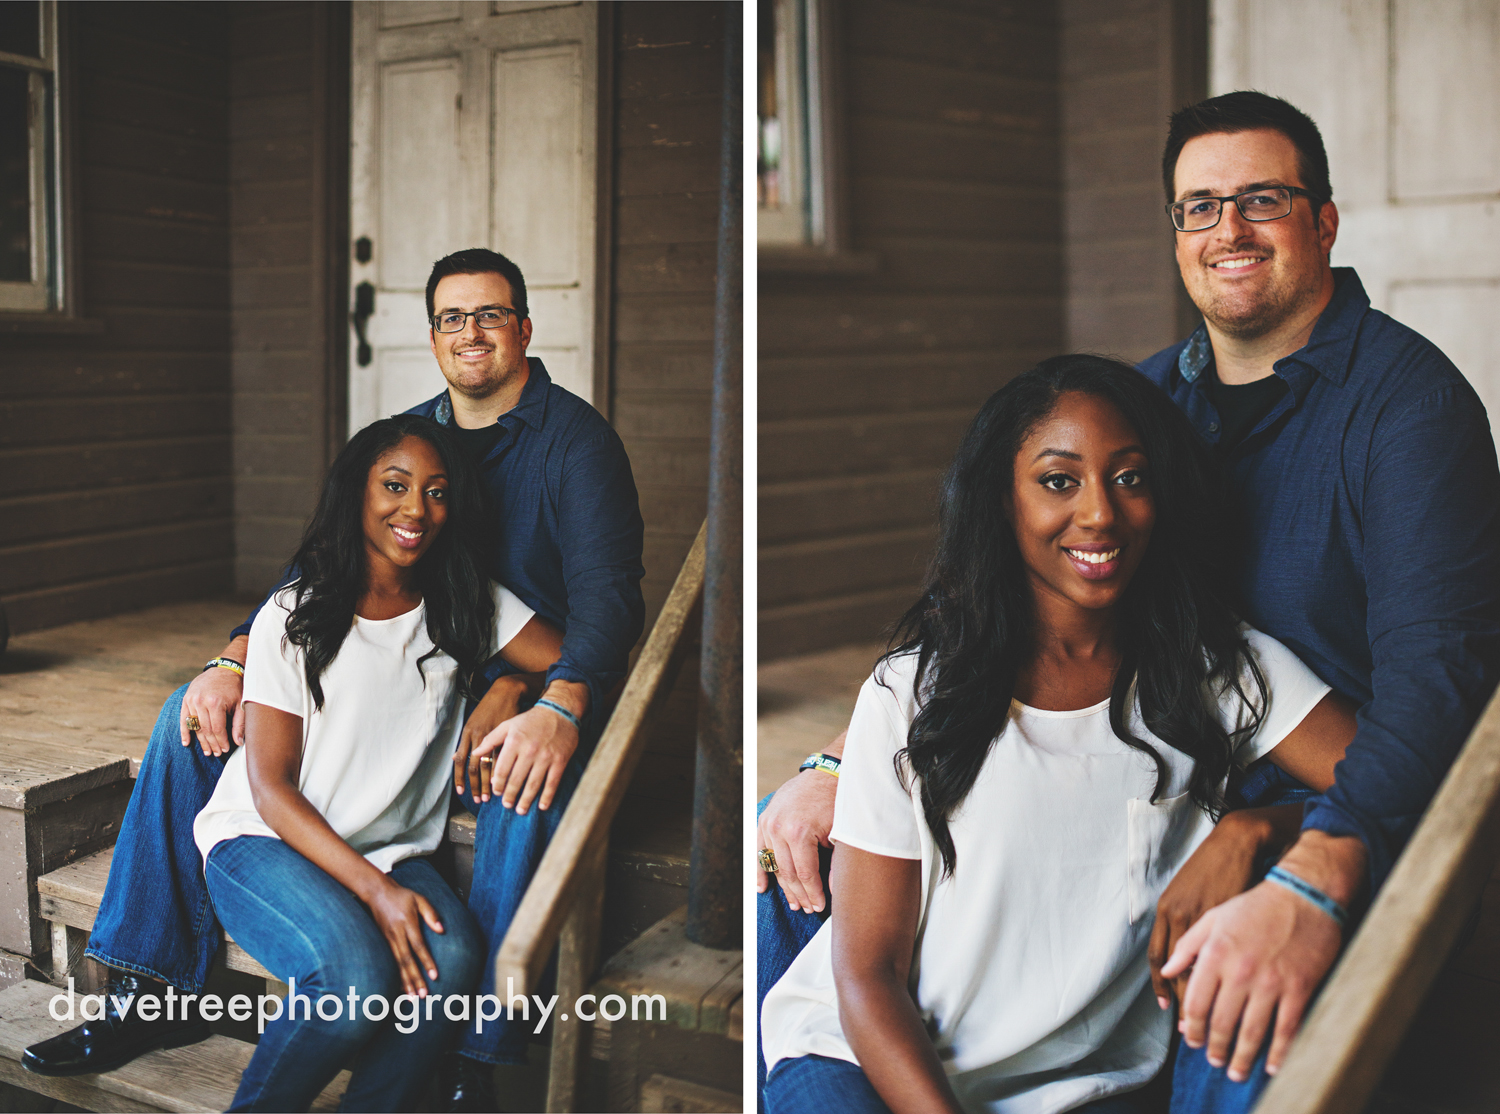 kalamazoo_wedding_photographer_kalamazoo_engagement_photographer_03.jpg